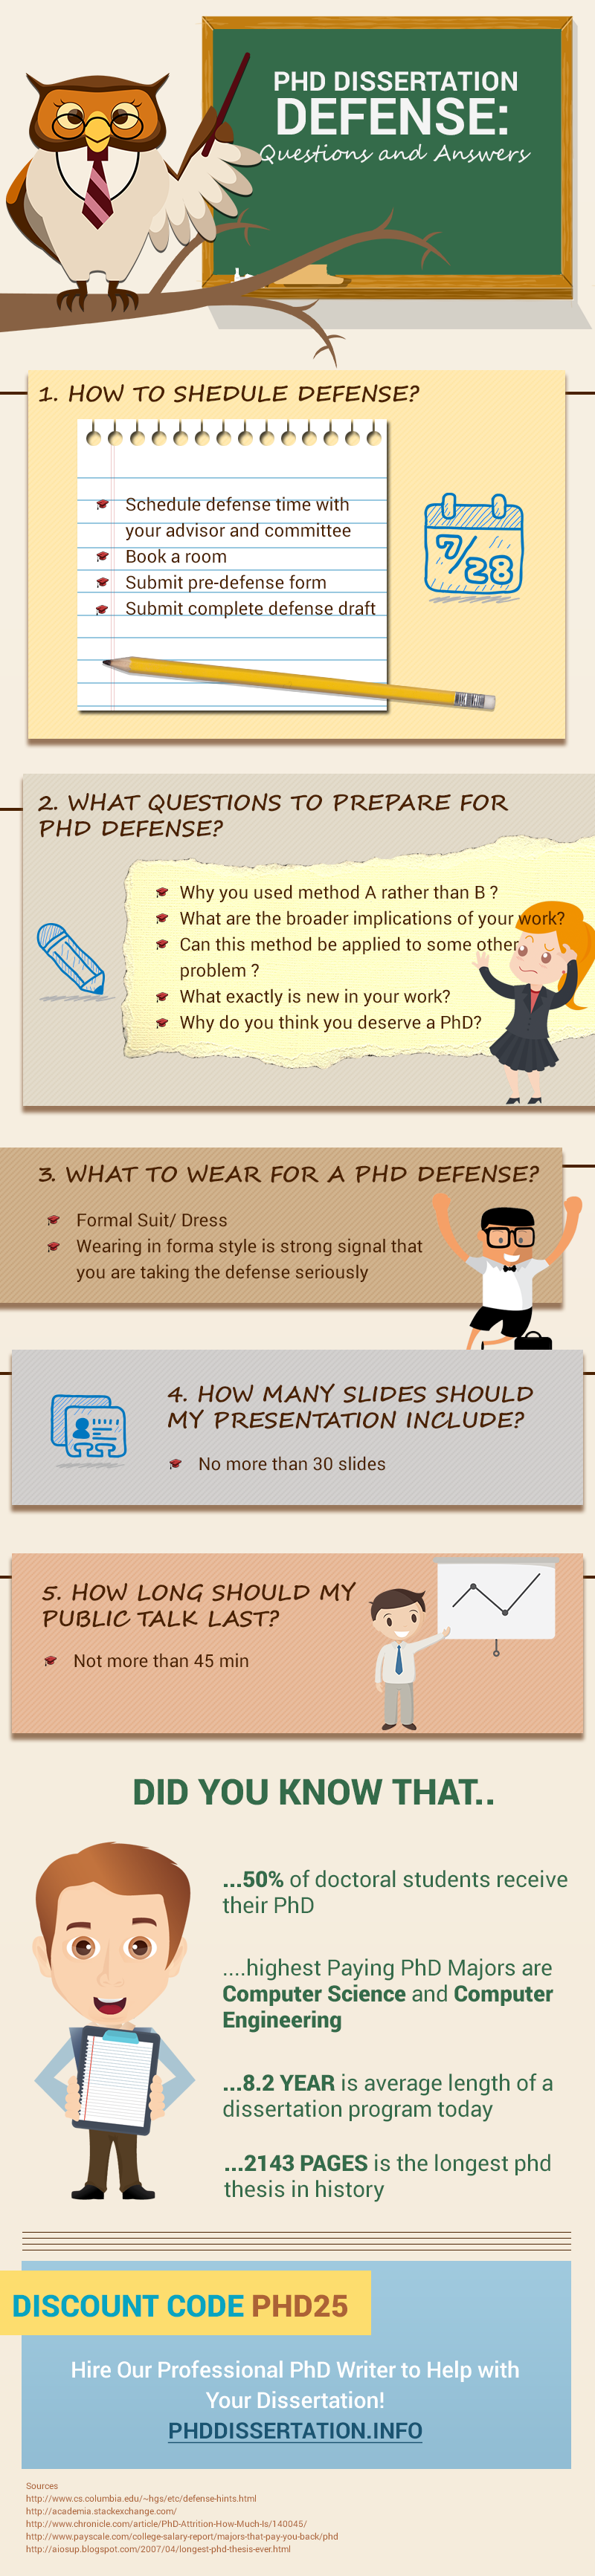 Thesis and dissertation accomplished online program